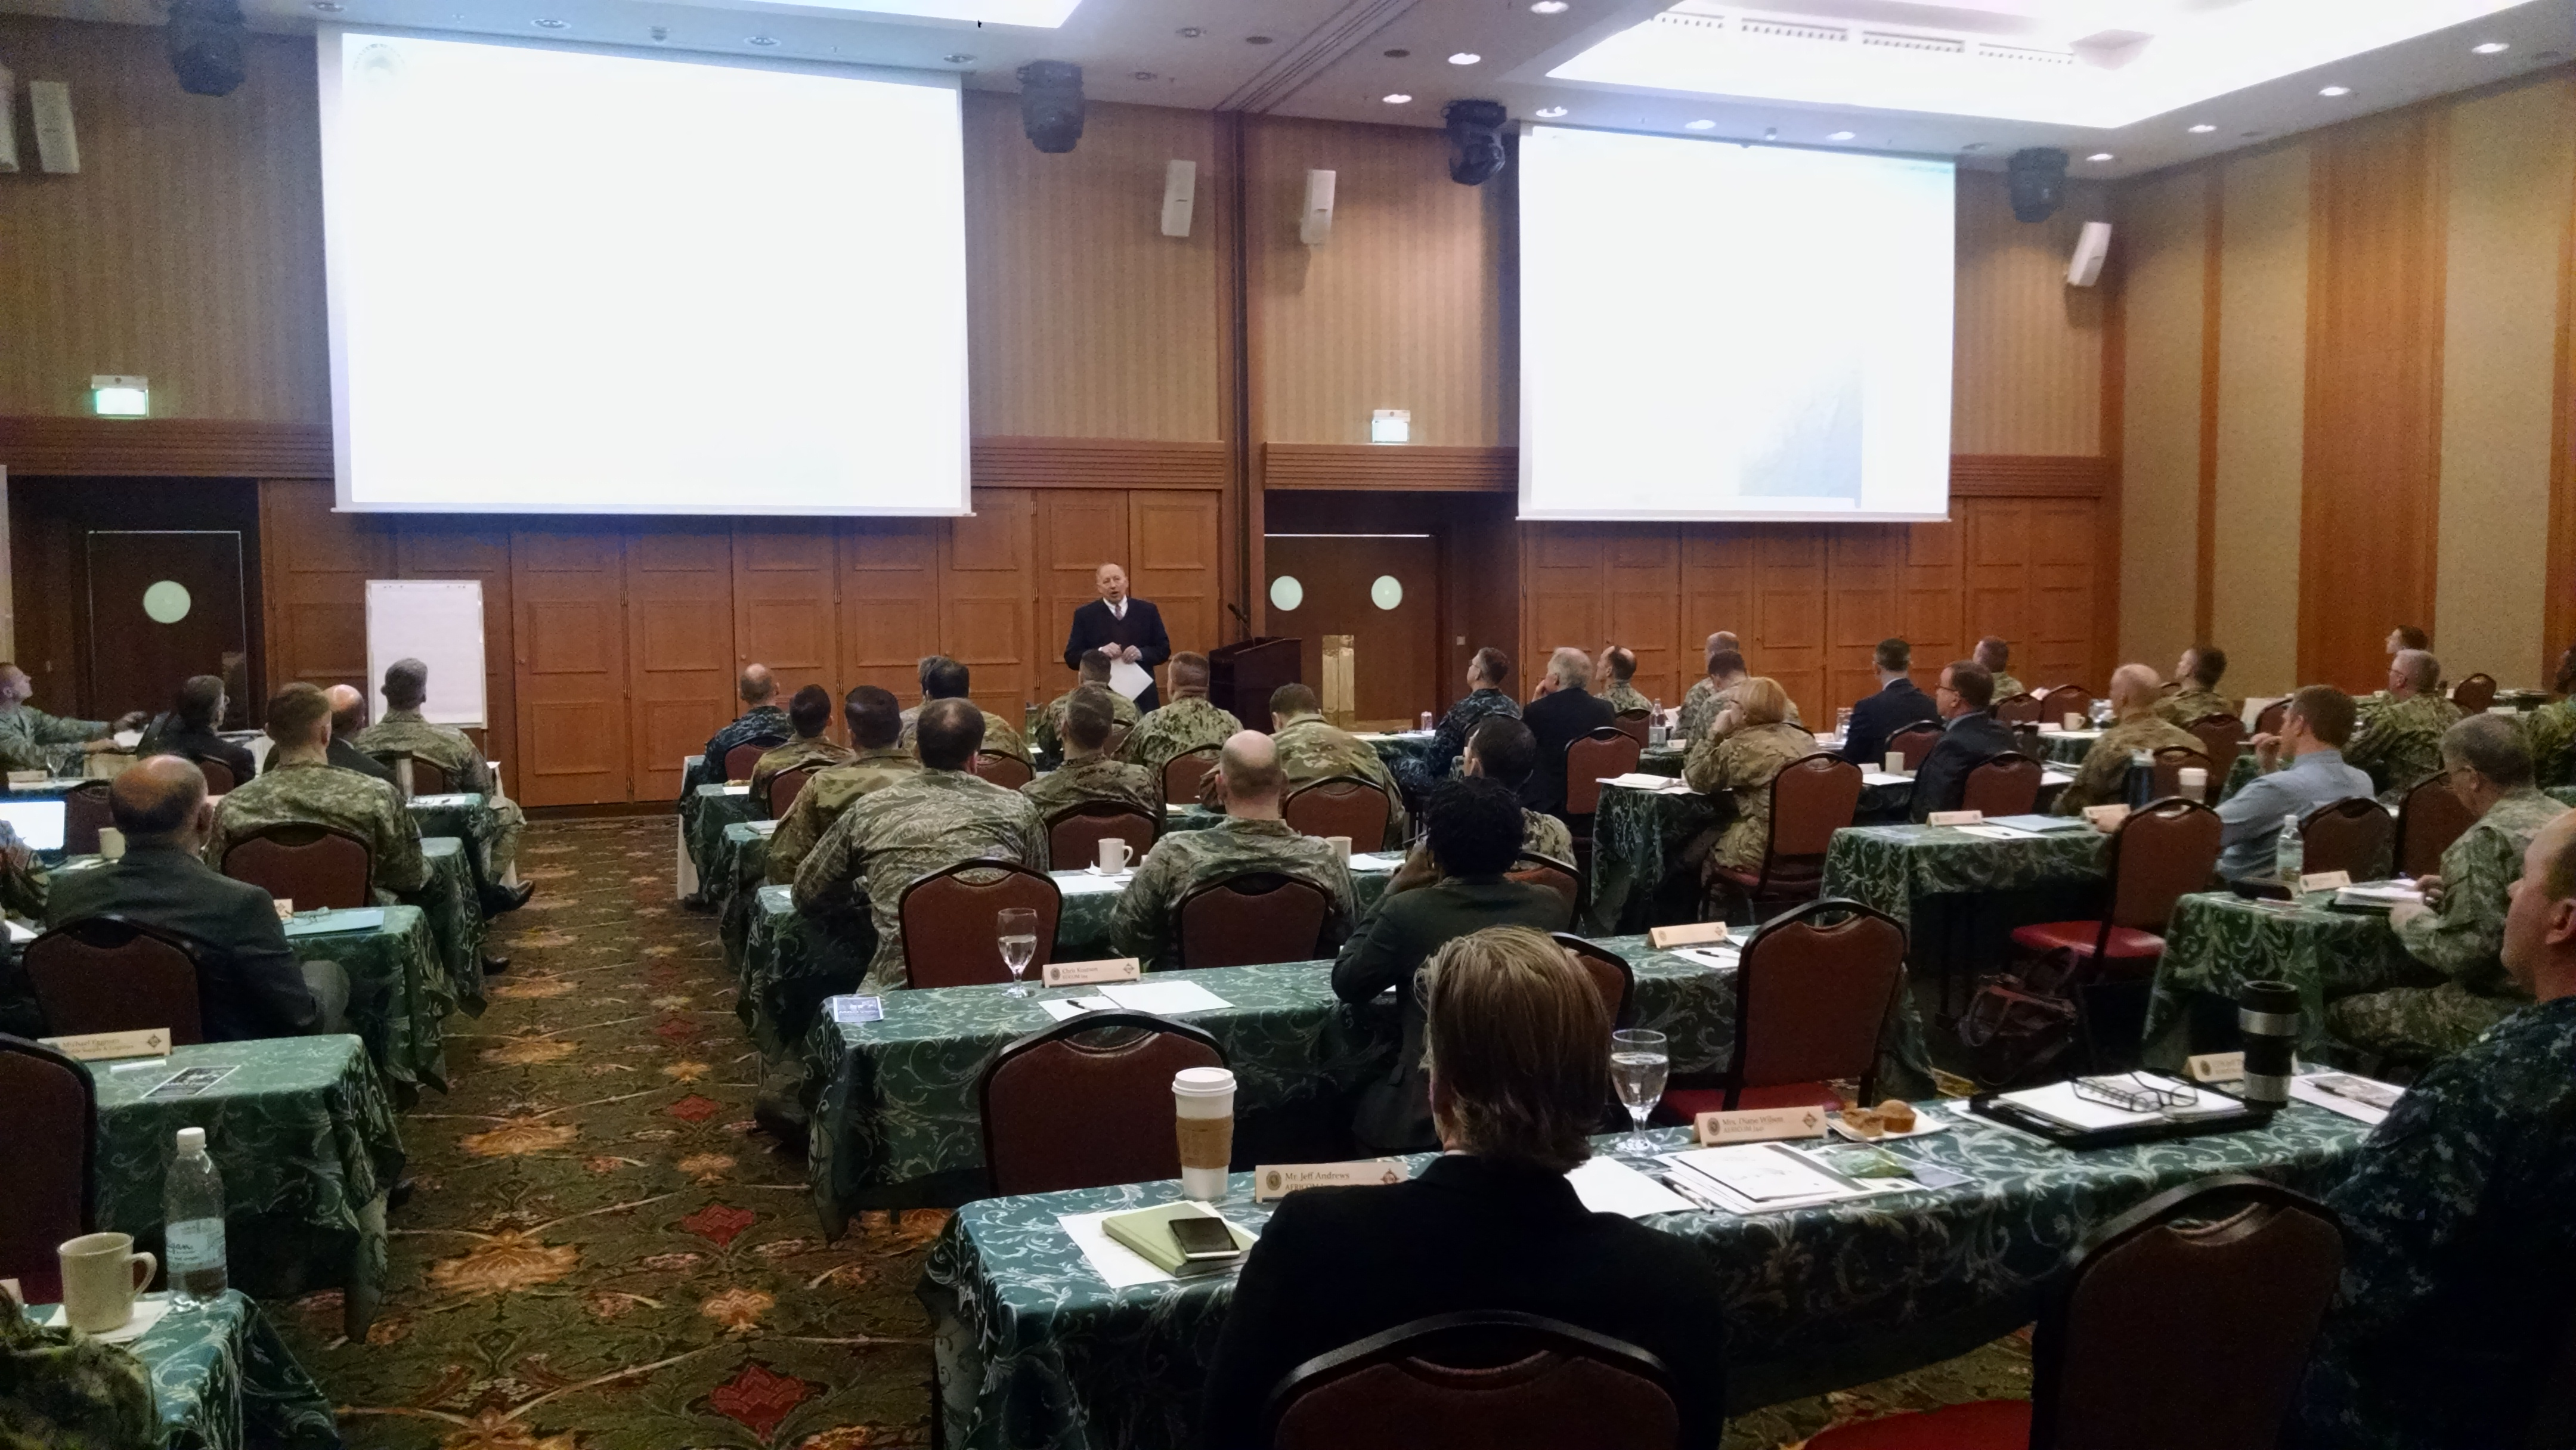 Dave King, AFRICOM Theater Posture J5-98, speaks to engineer workshop participants about the AFRICOM theater posture.